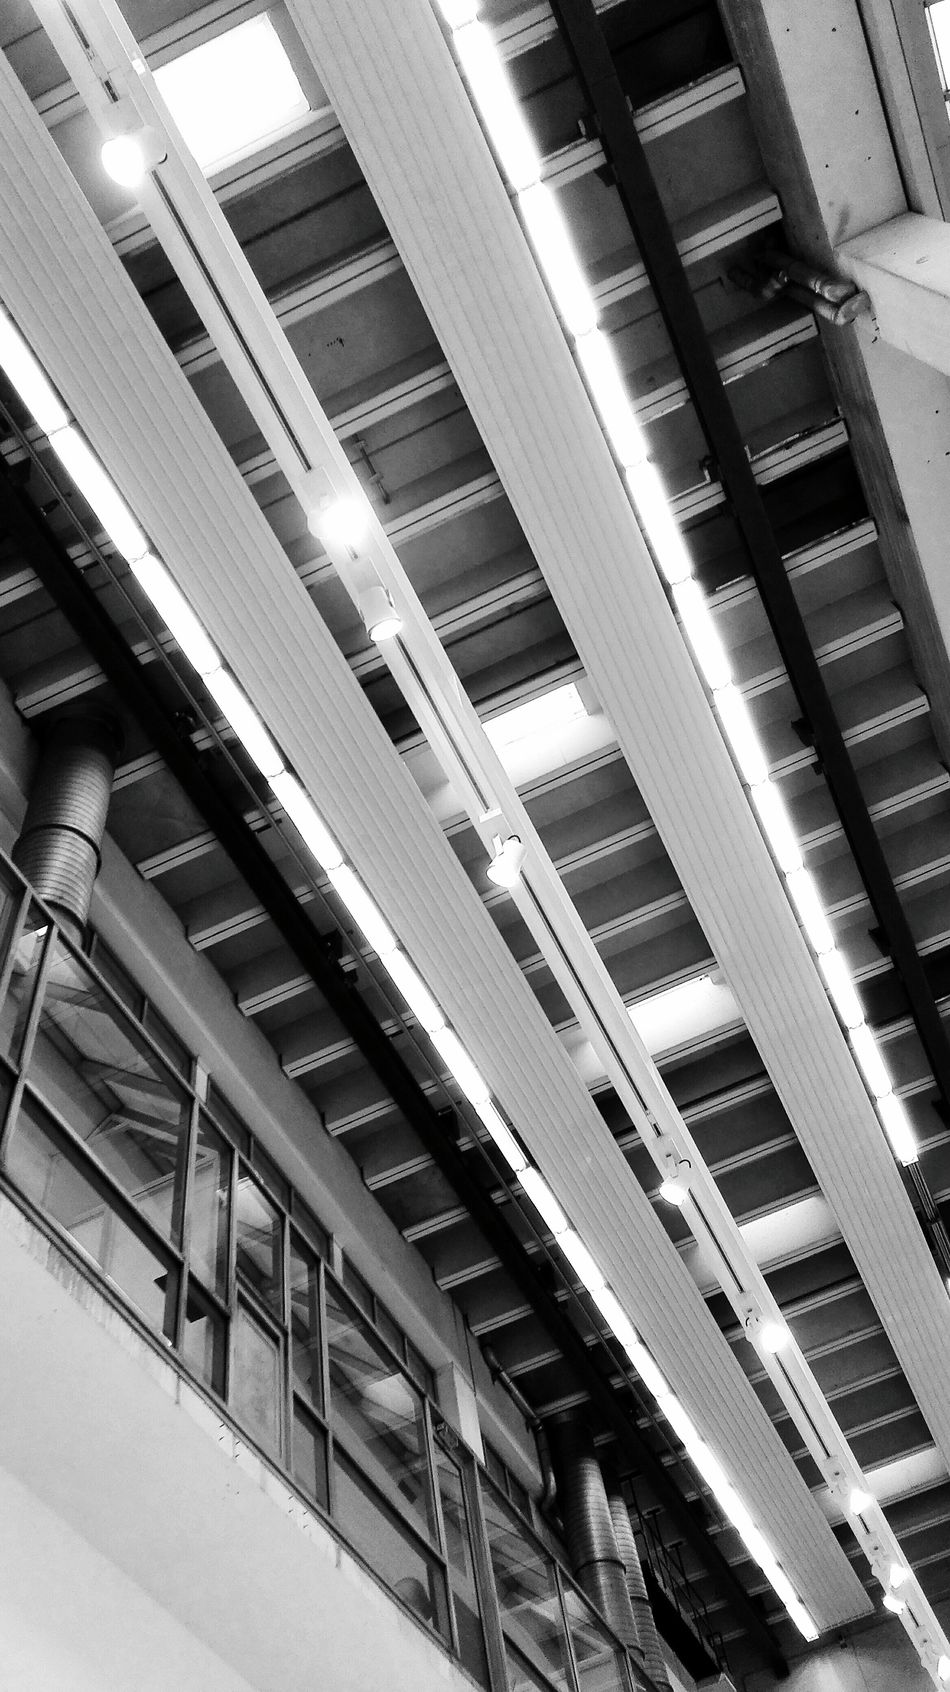 Looking Up another Factory Ceiling.